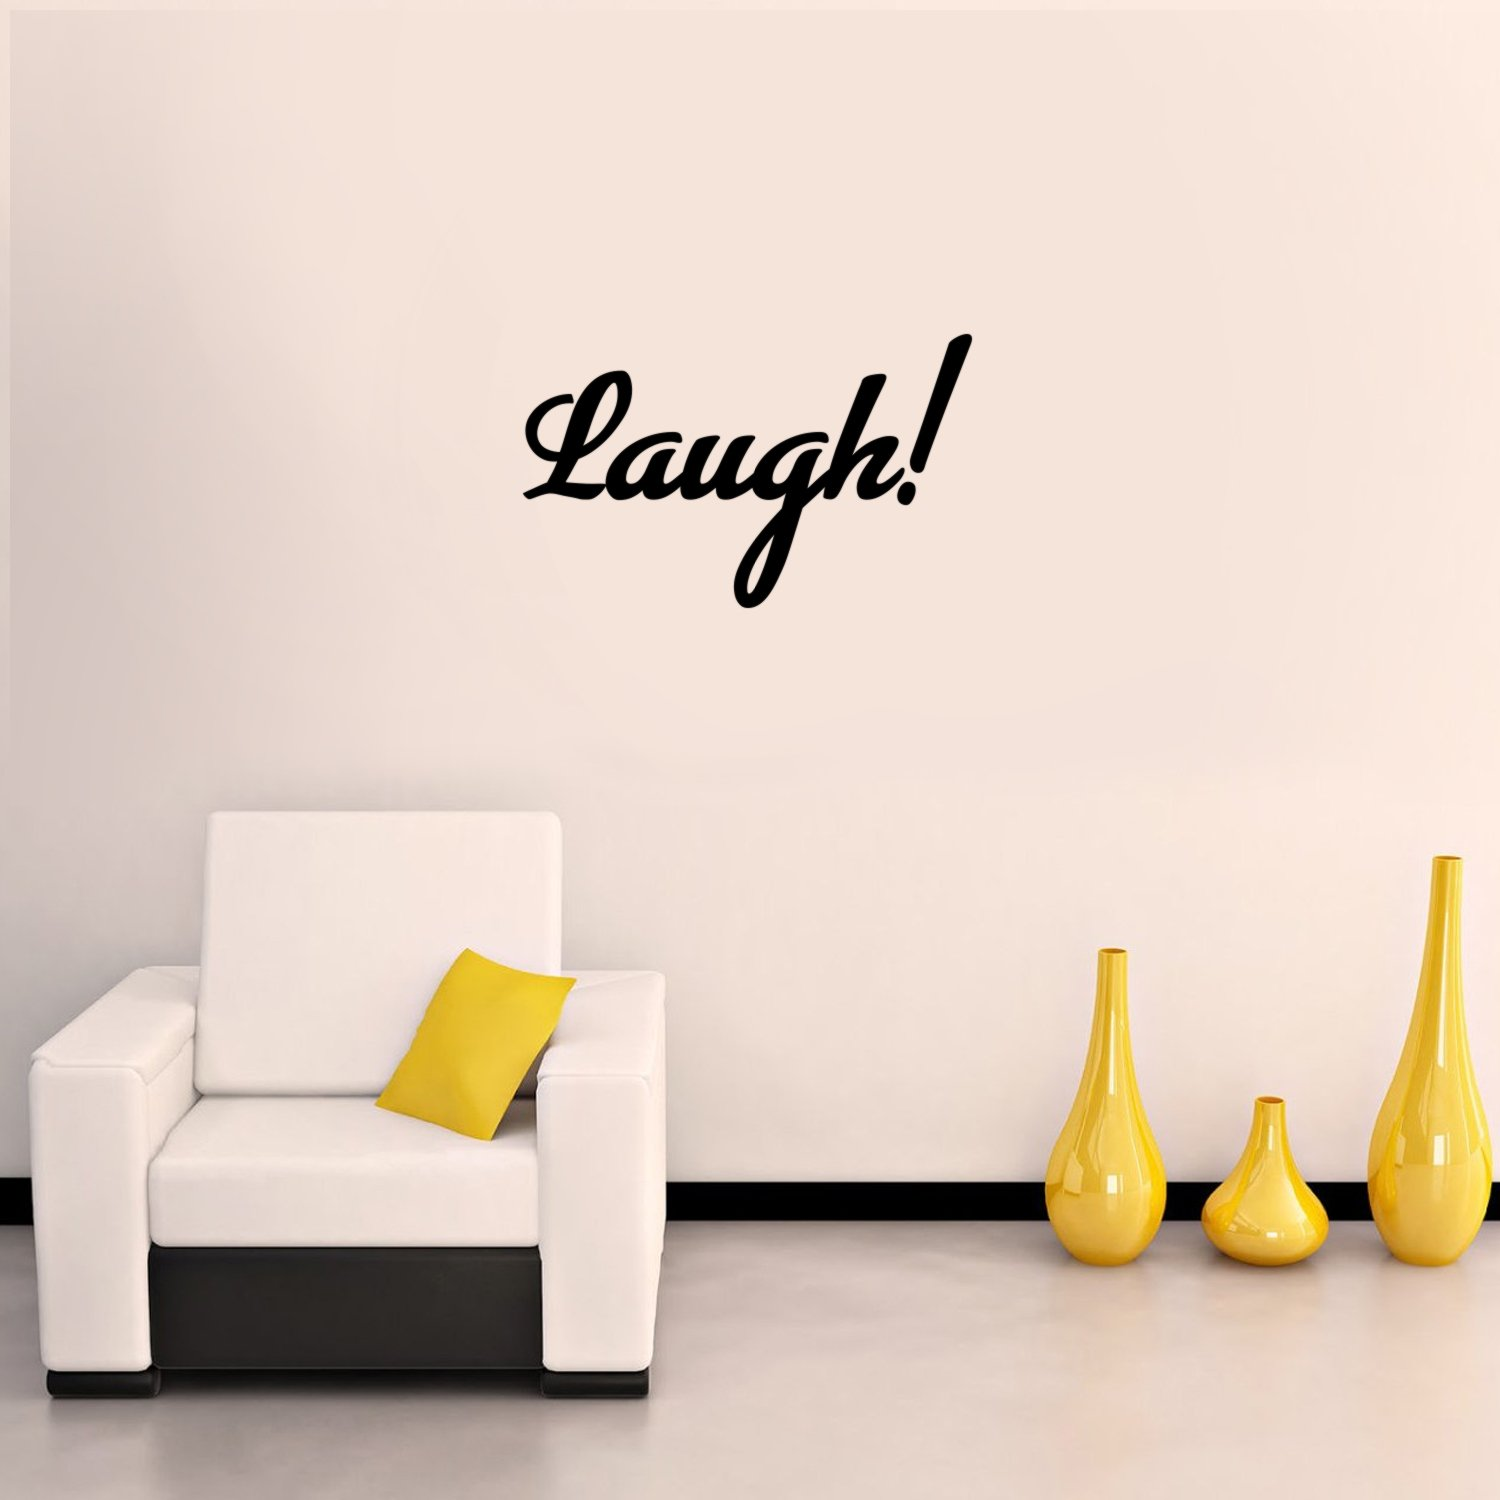 Laugh Inspirational Quote Trendy Vinyl Stickers 8 x 12 Decoration Wall Art Bedroom Living Room Wall Decor Wall Art Decal